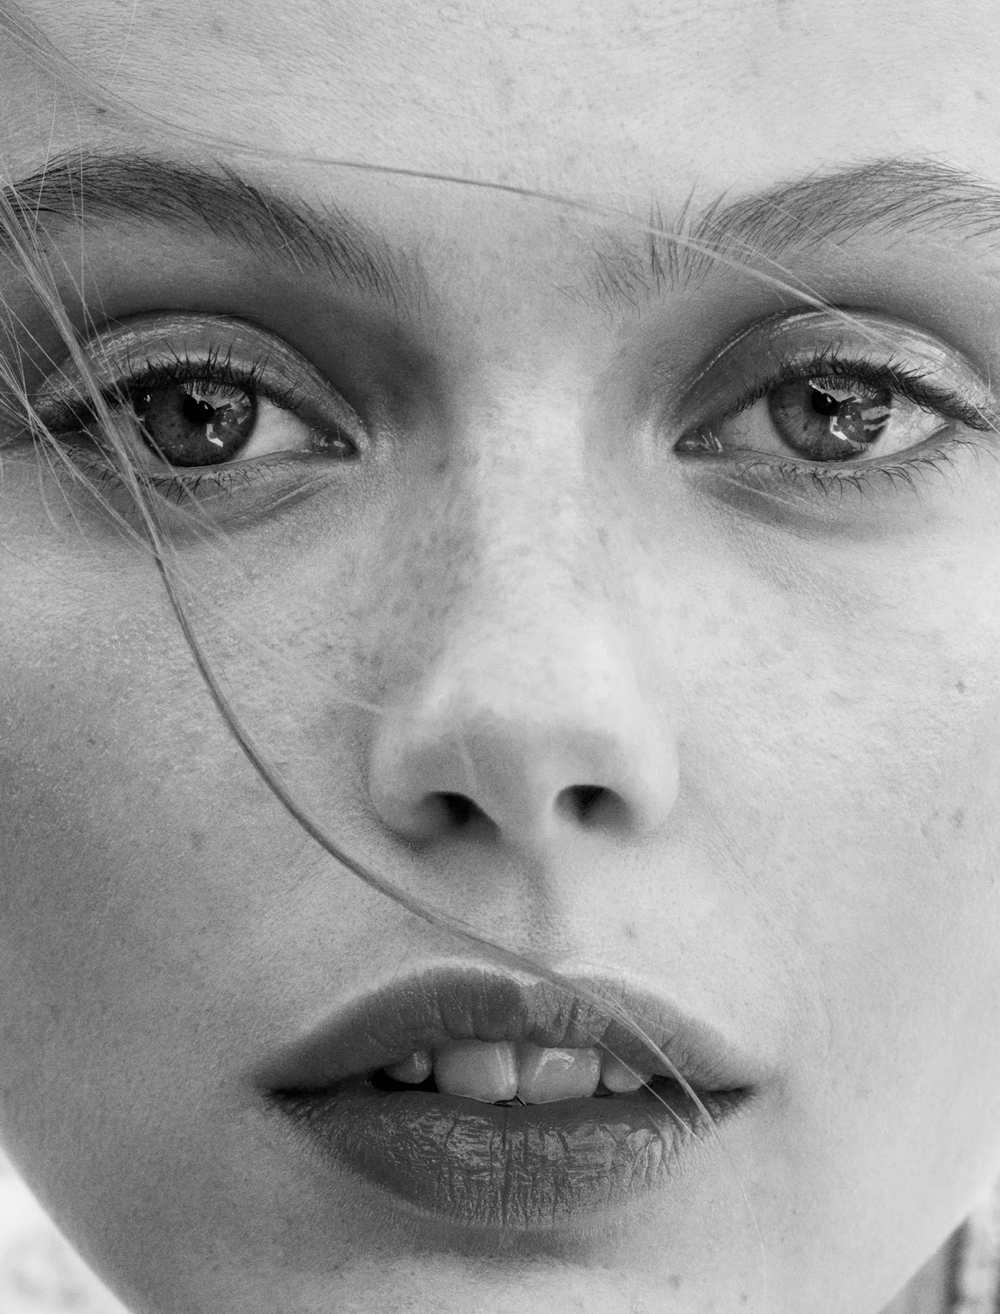 Frida Gustavsson photographed by Benjamin Vnuk & styled by Virginie Benarroch for Glamour France May 2015 via fashioned by love british fashion blog